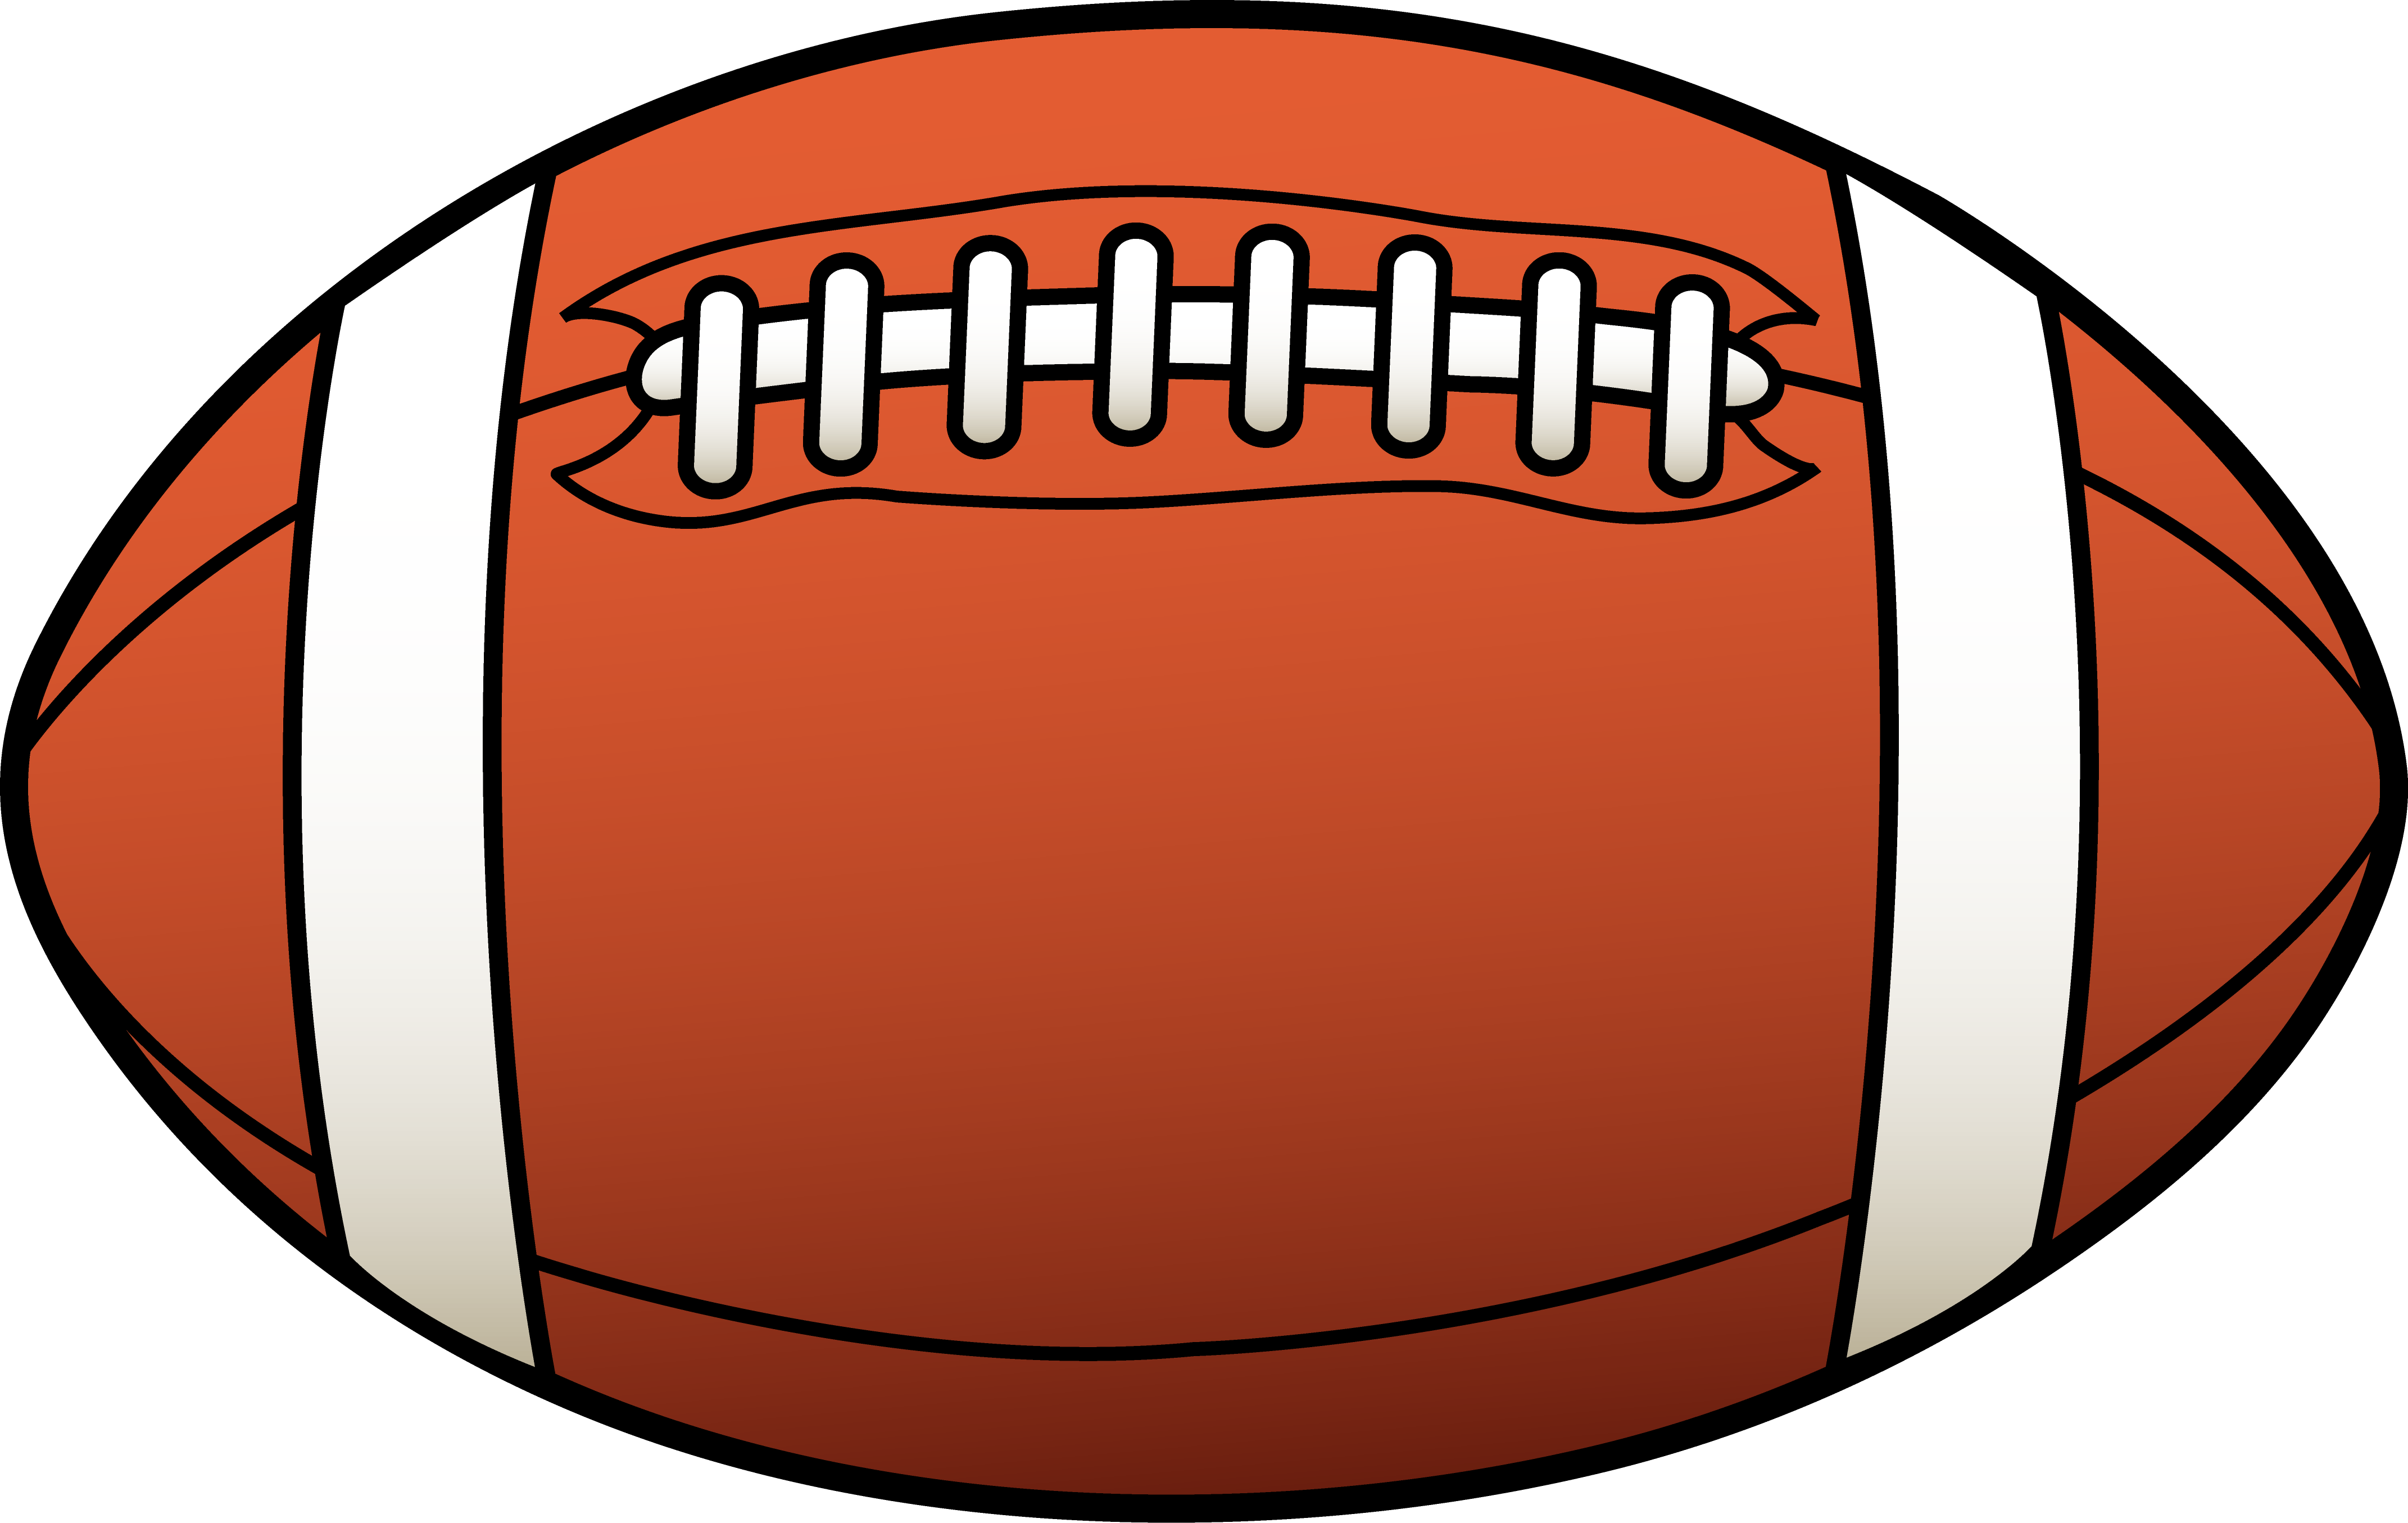 Packers football clipart vector library library clipart football - Clipart Panda | Sports - Football | Pinterest ... vector library library